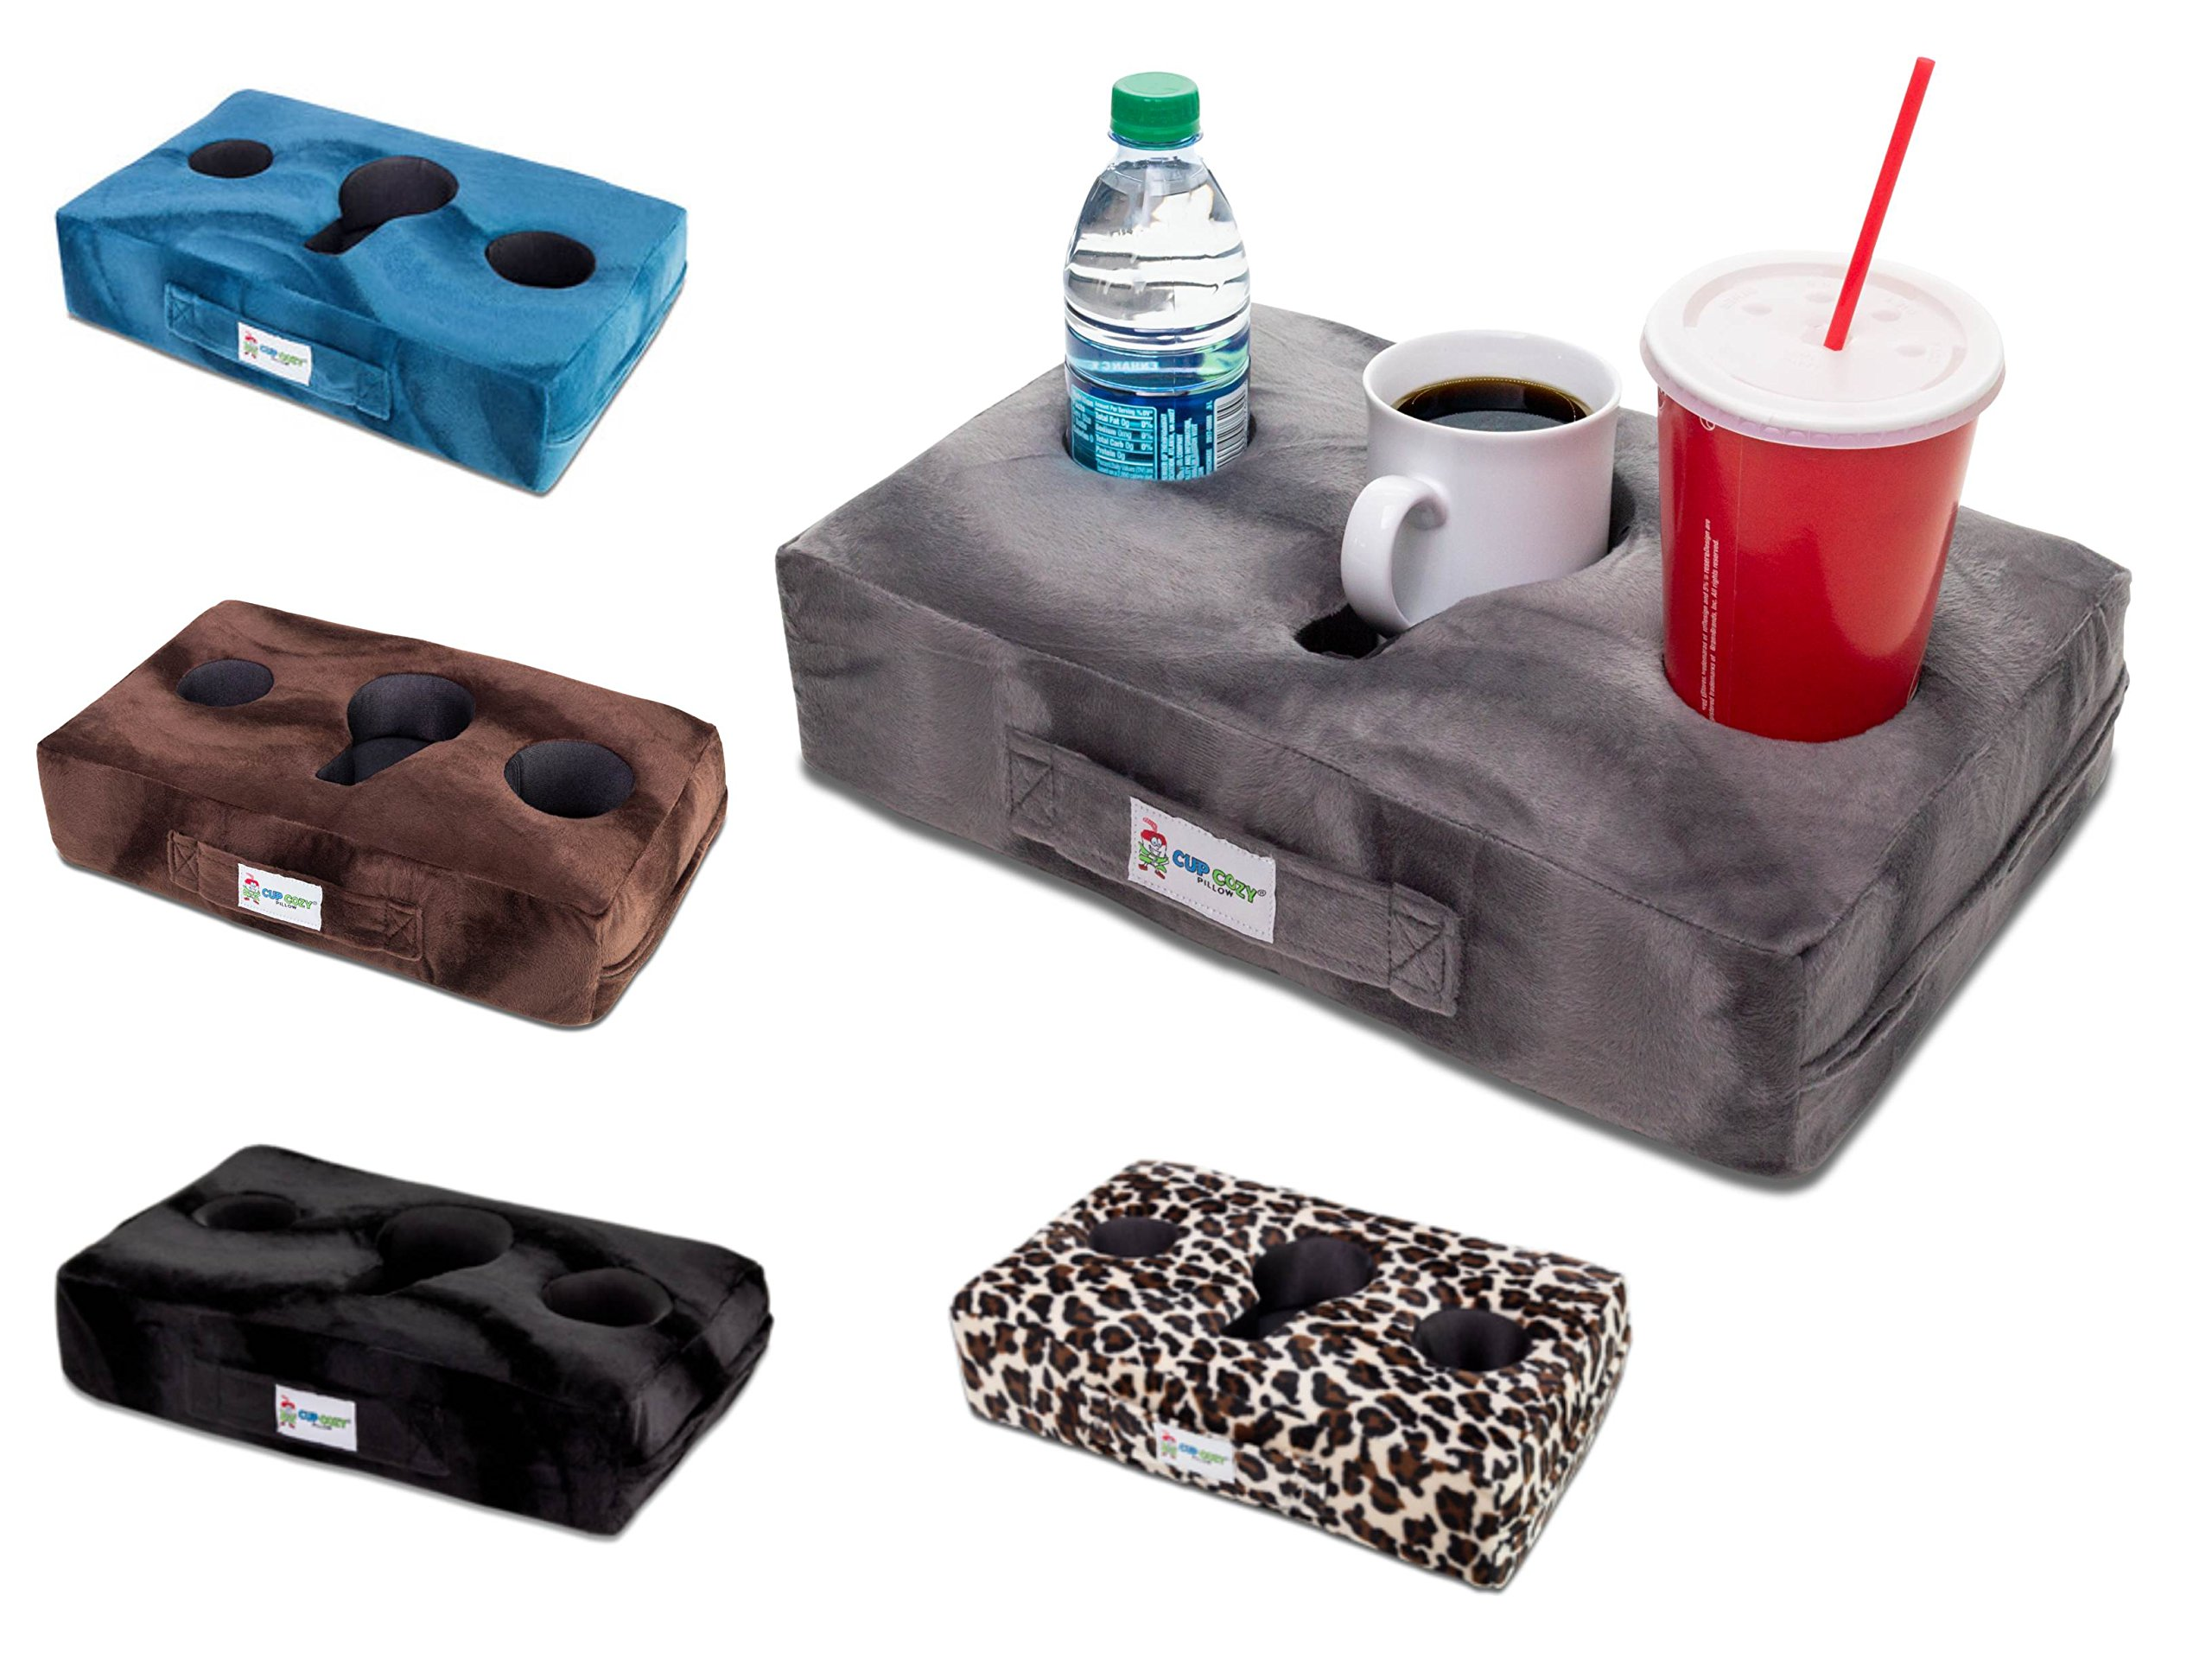 Cup Cozy Pillow (Gray) As Seen on TV-The world's BEST cup holder! Keep your drinks close and prevent spills. Use it anywhere-Couch, floor, bed, man cave, car, RV, park, beach and more! by Cup Cozy Pillow